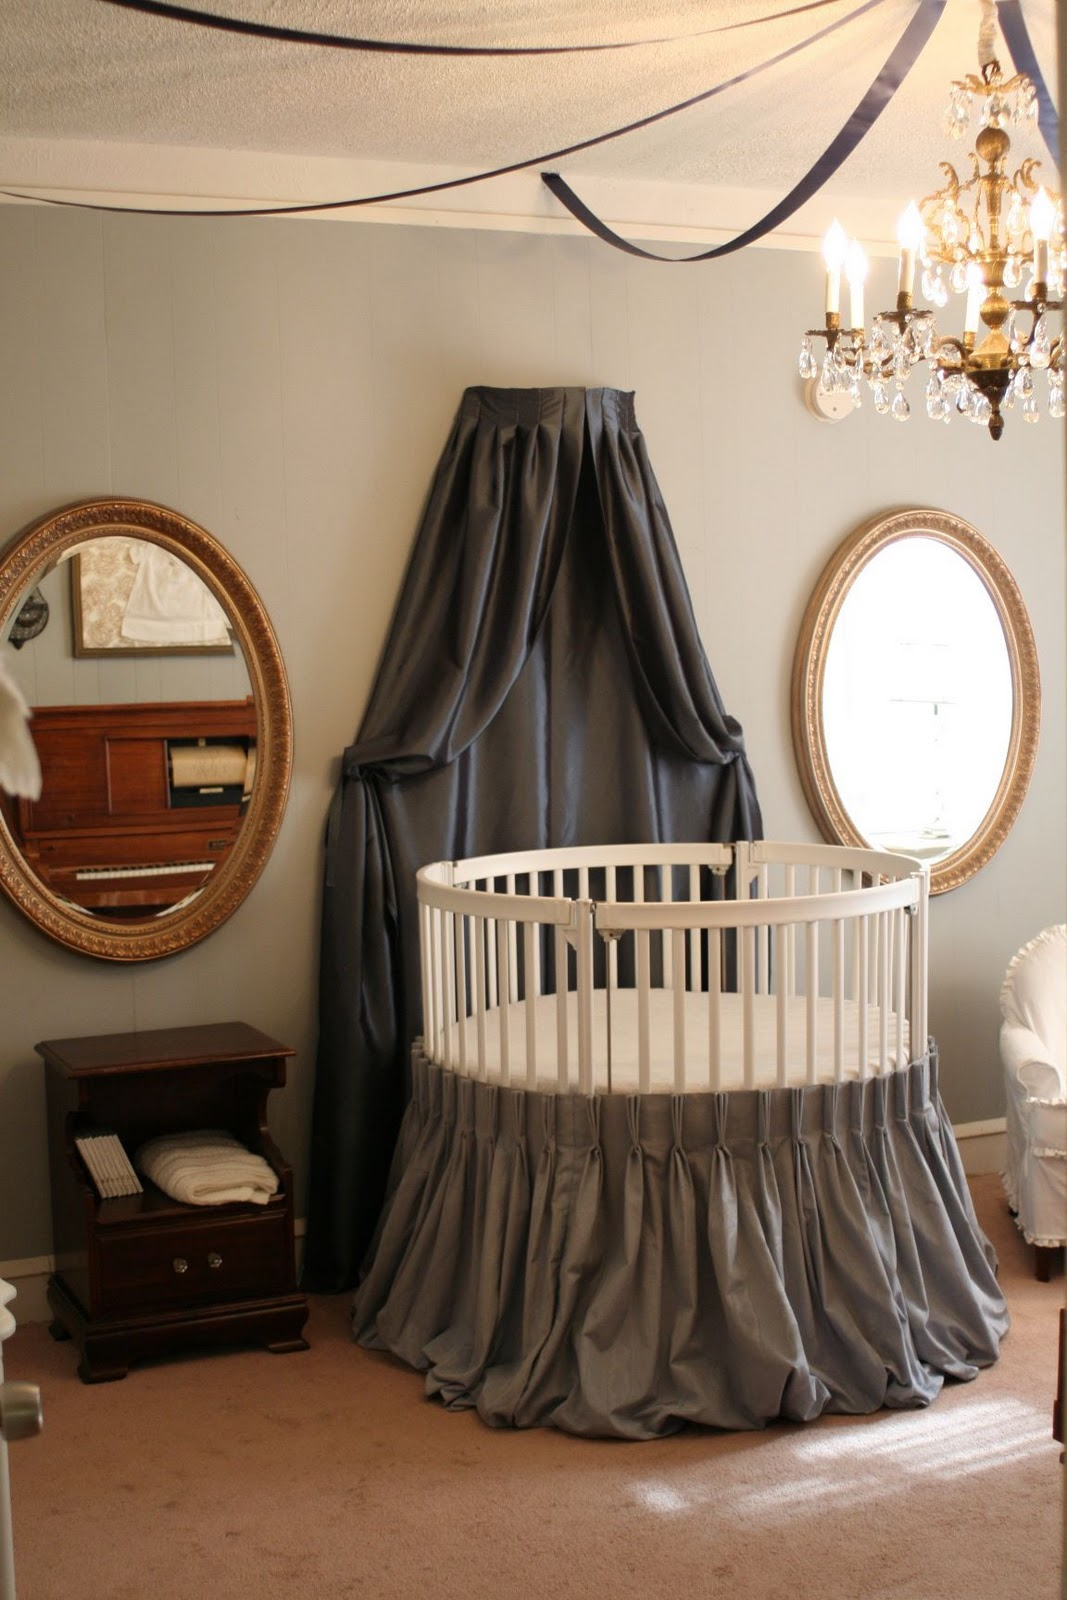 Adorable Round Crib Decorated By Vintage Ornaments In